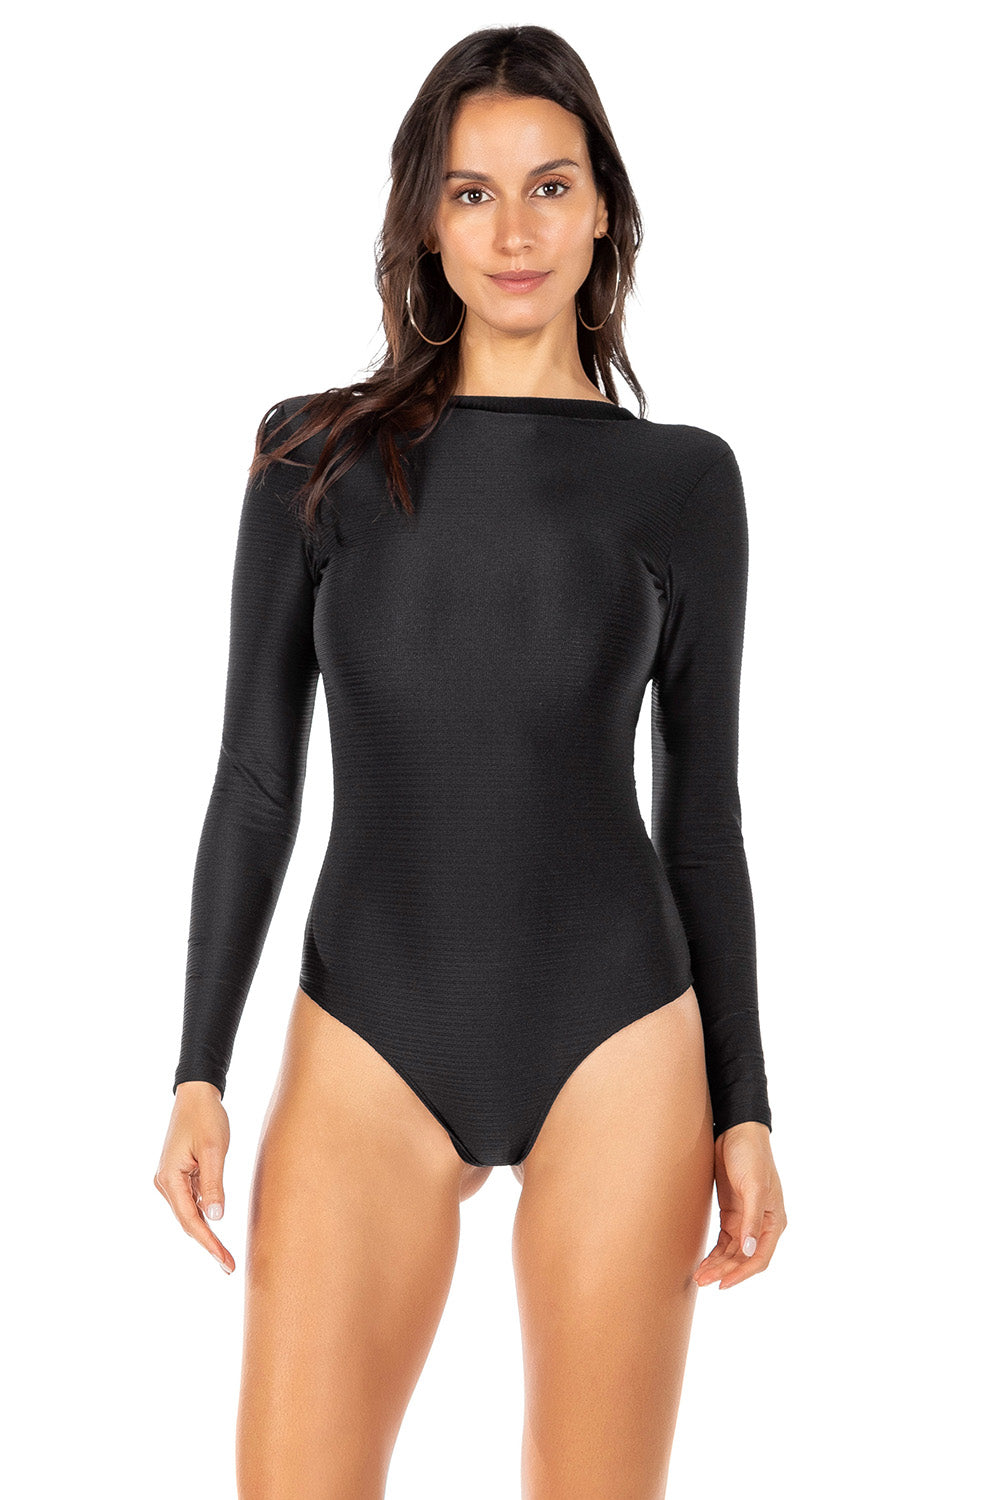 Beauty All In One One Piece 1